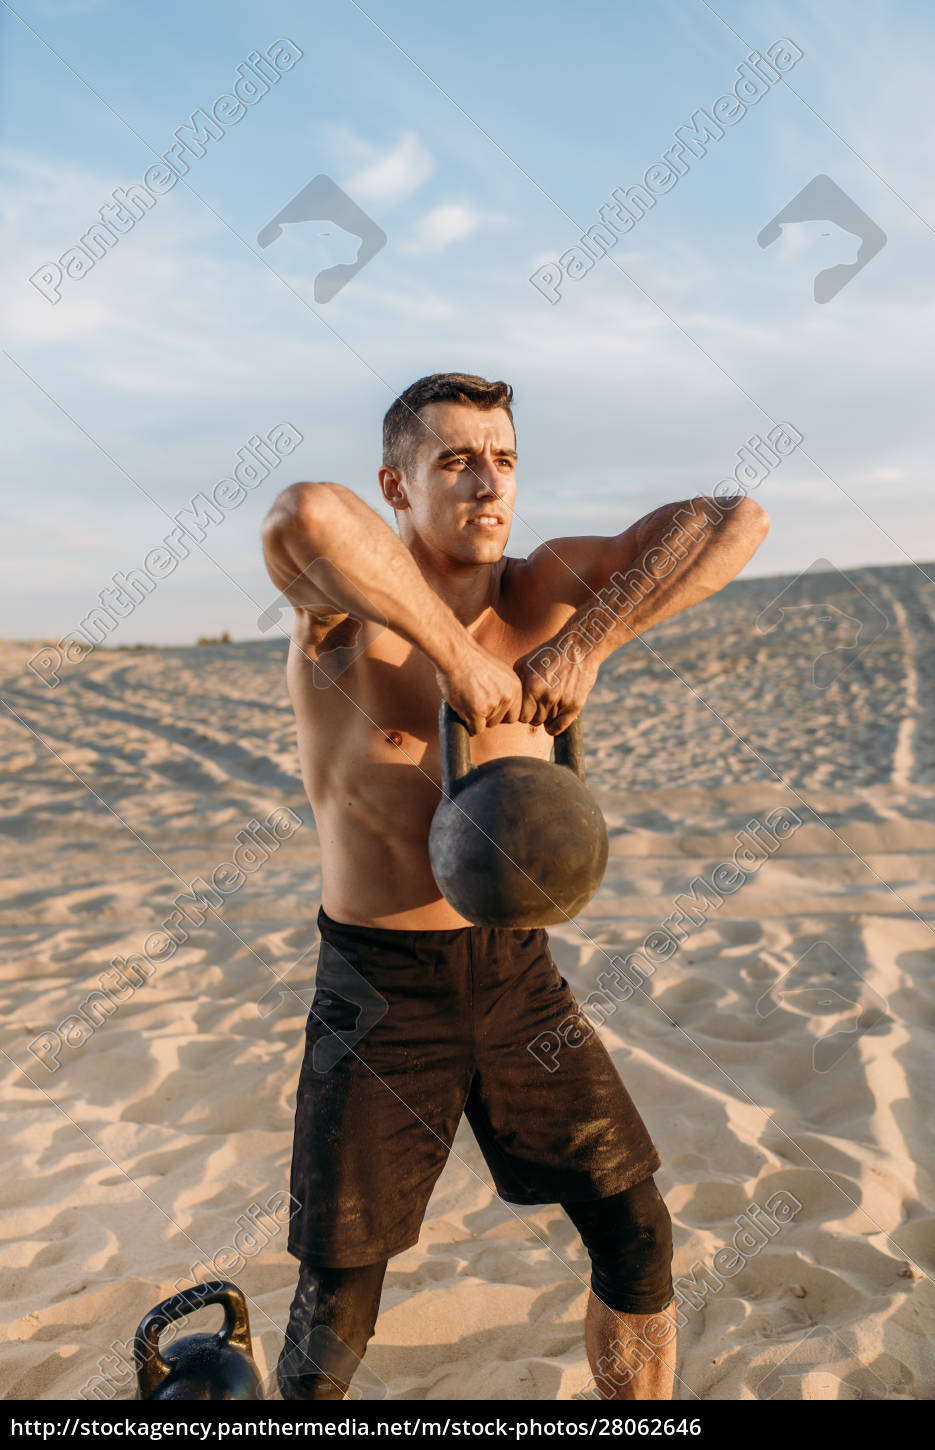 male, athlete, after, workout, in, desert - 28062646